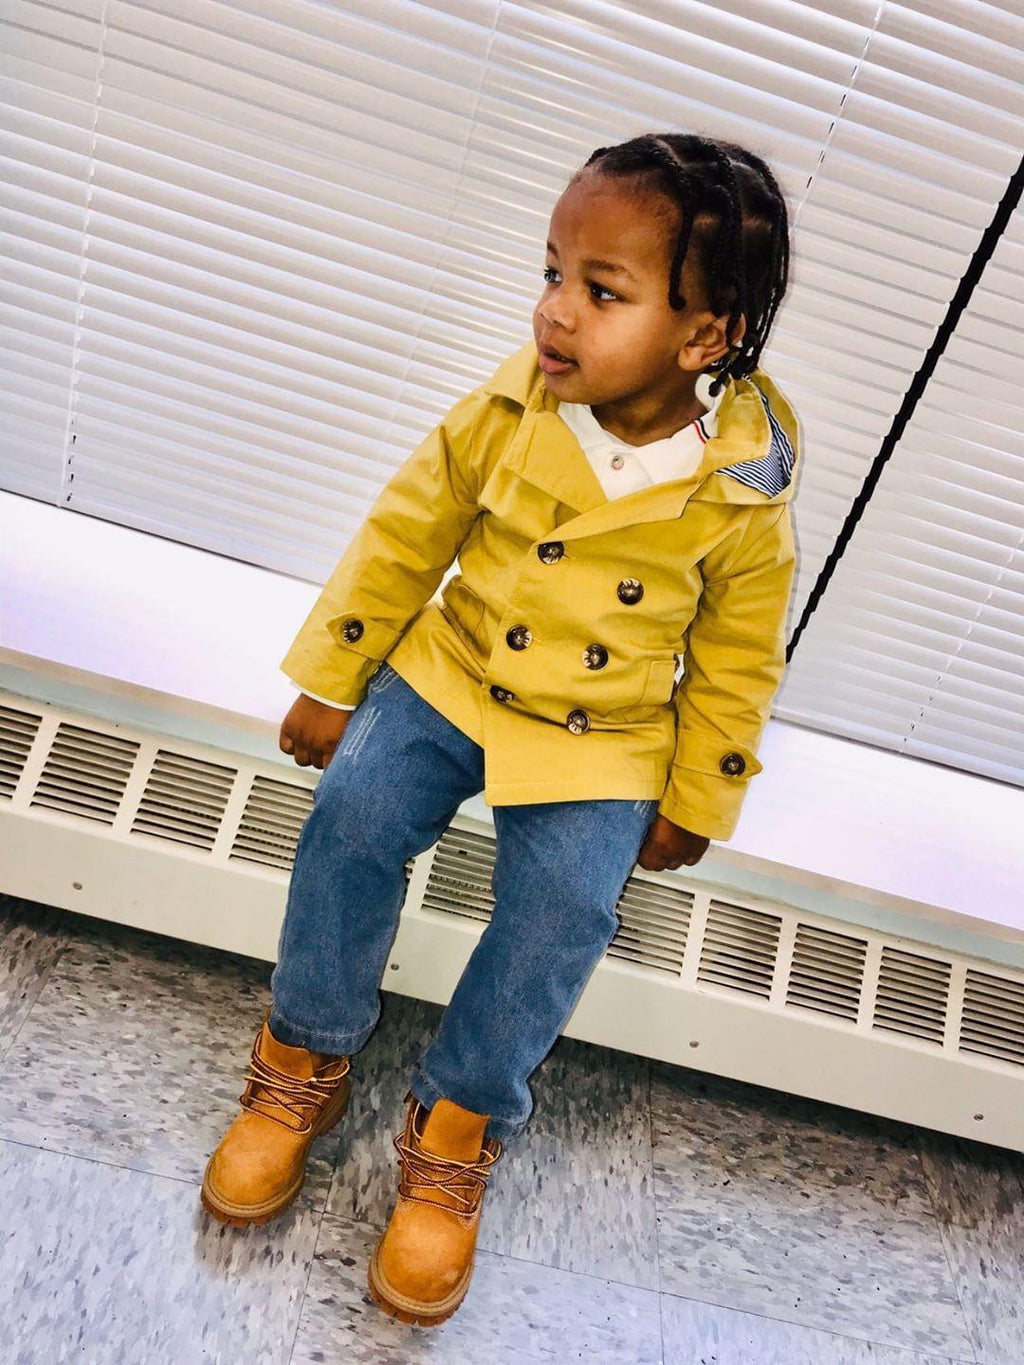 Abe Trench Set (3 Pcs) - Rah Love's Boutique- Affordable Trendy Toddler Clothing & Accessories